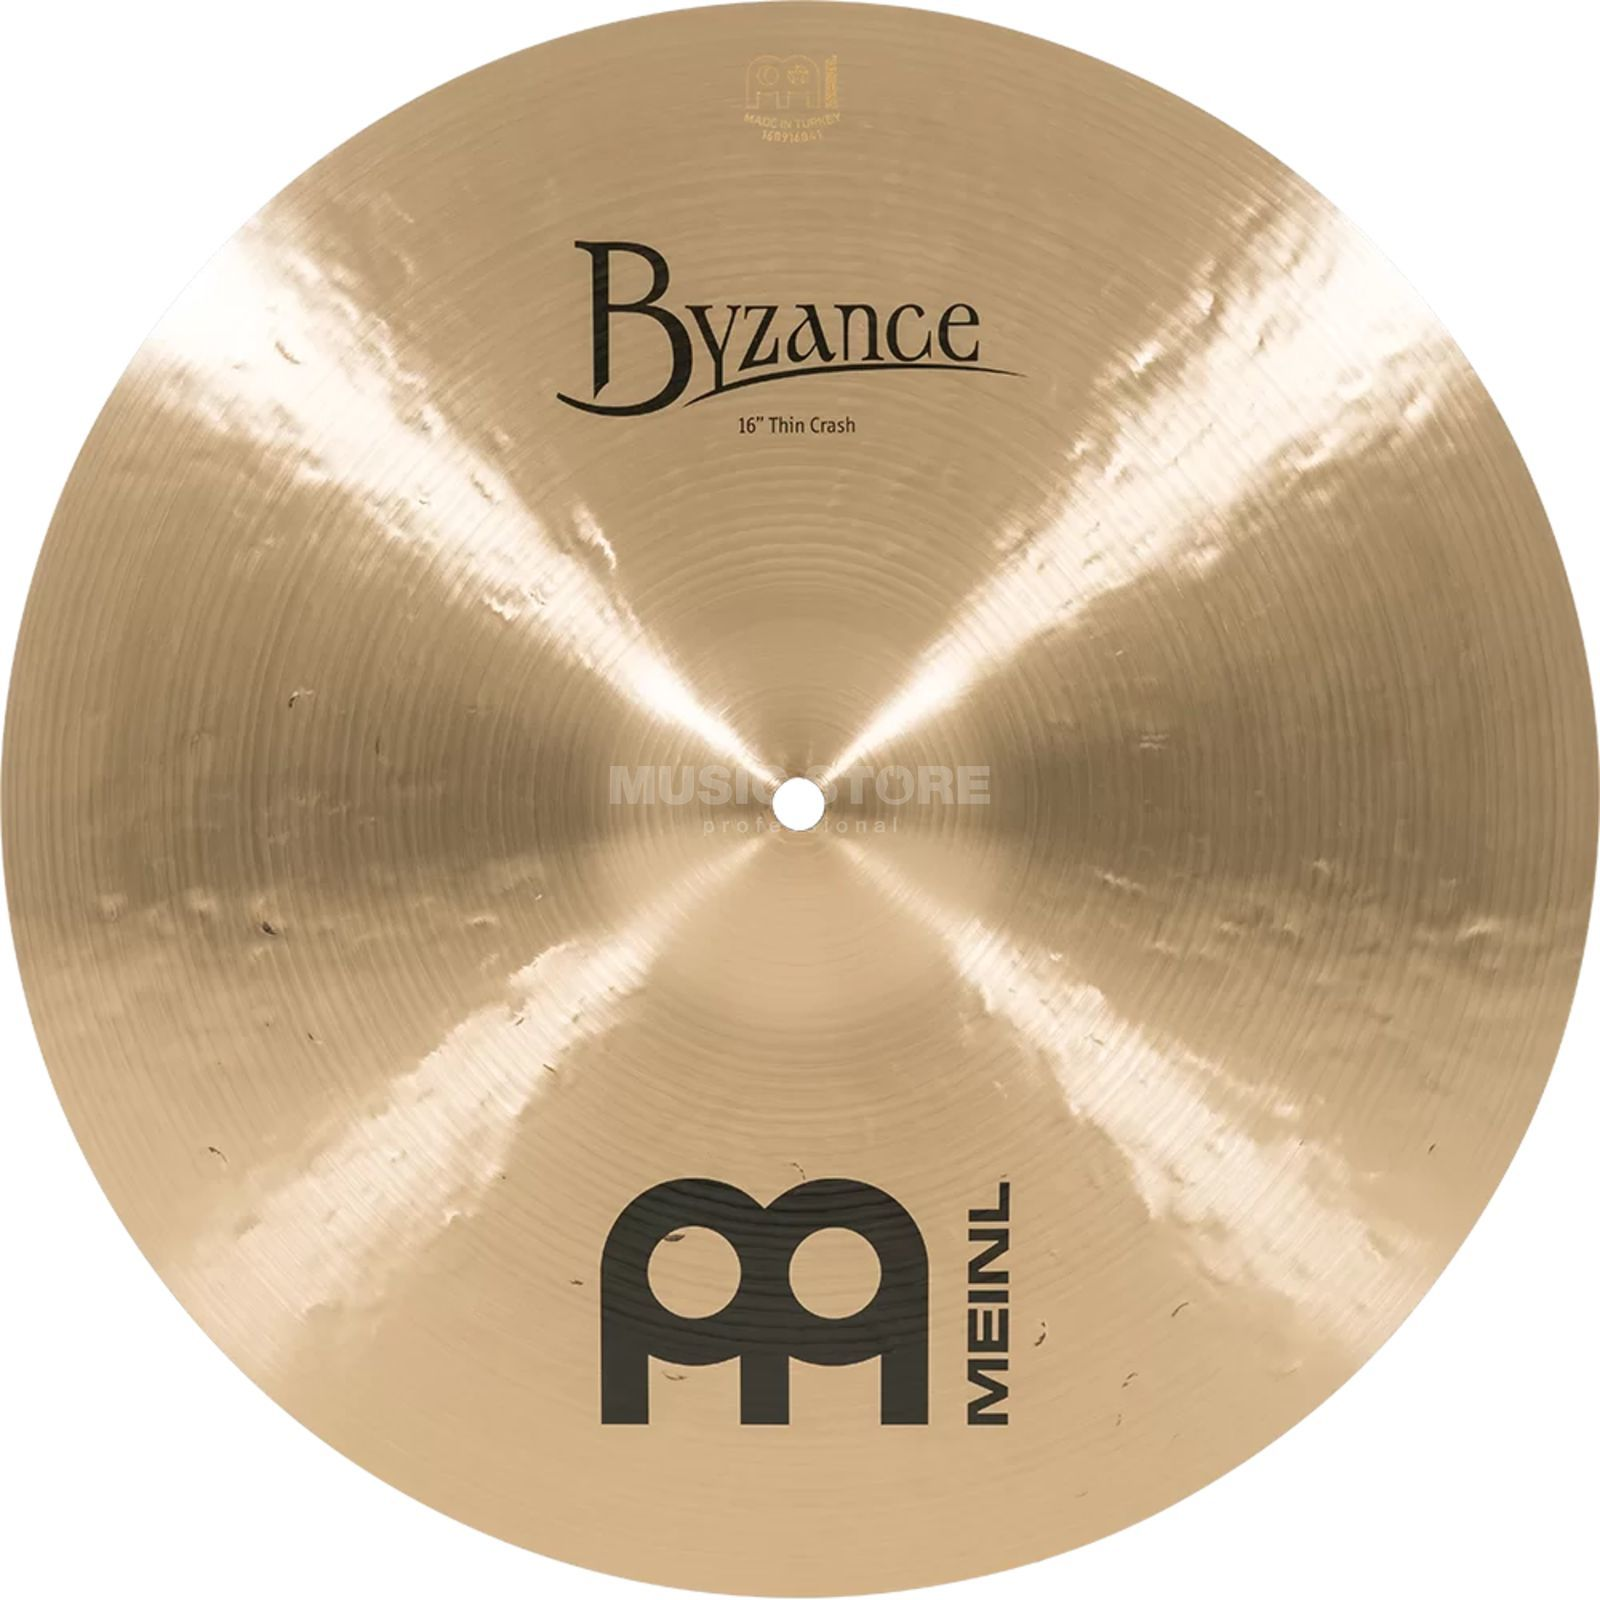 "Meinl Byzance Thin Crash 16"", B16TC, Traditional Finish Produktbillede"